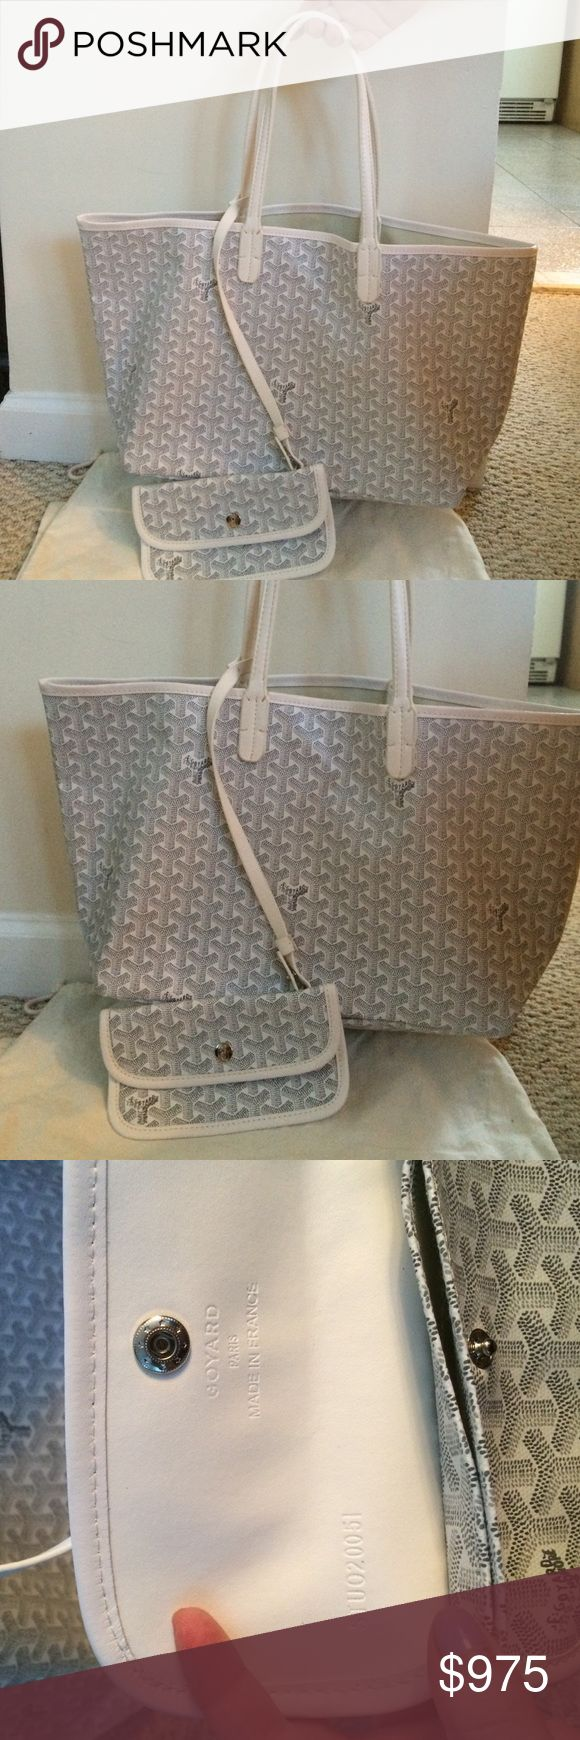 Goyard St louis tote Goyard pm st louis tote. Comes with the pouchlette.no stains on the bag. Does not comes with the dust bag. Goyard Bags Totes